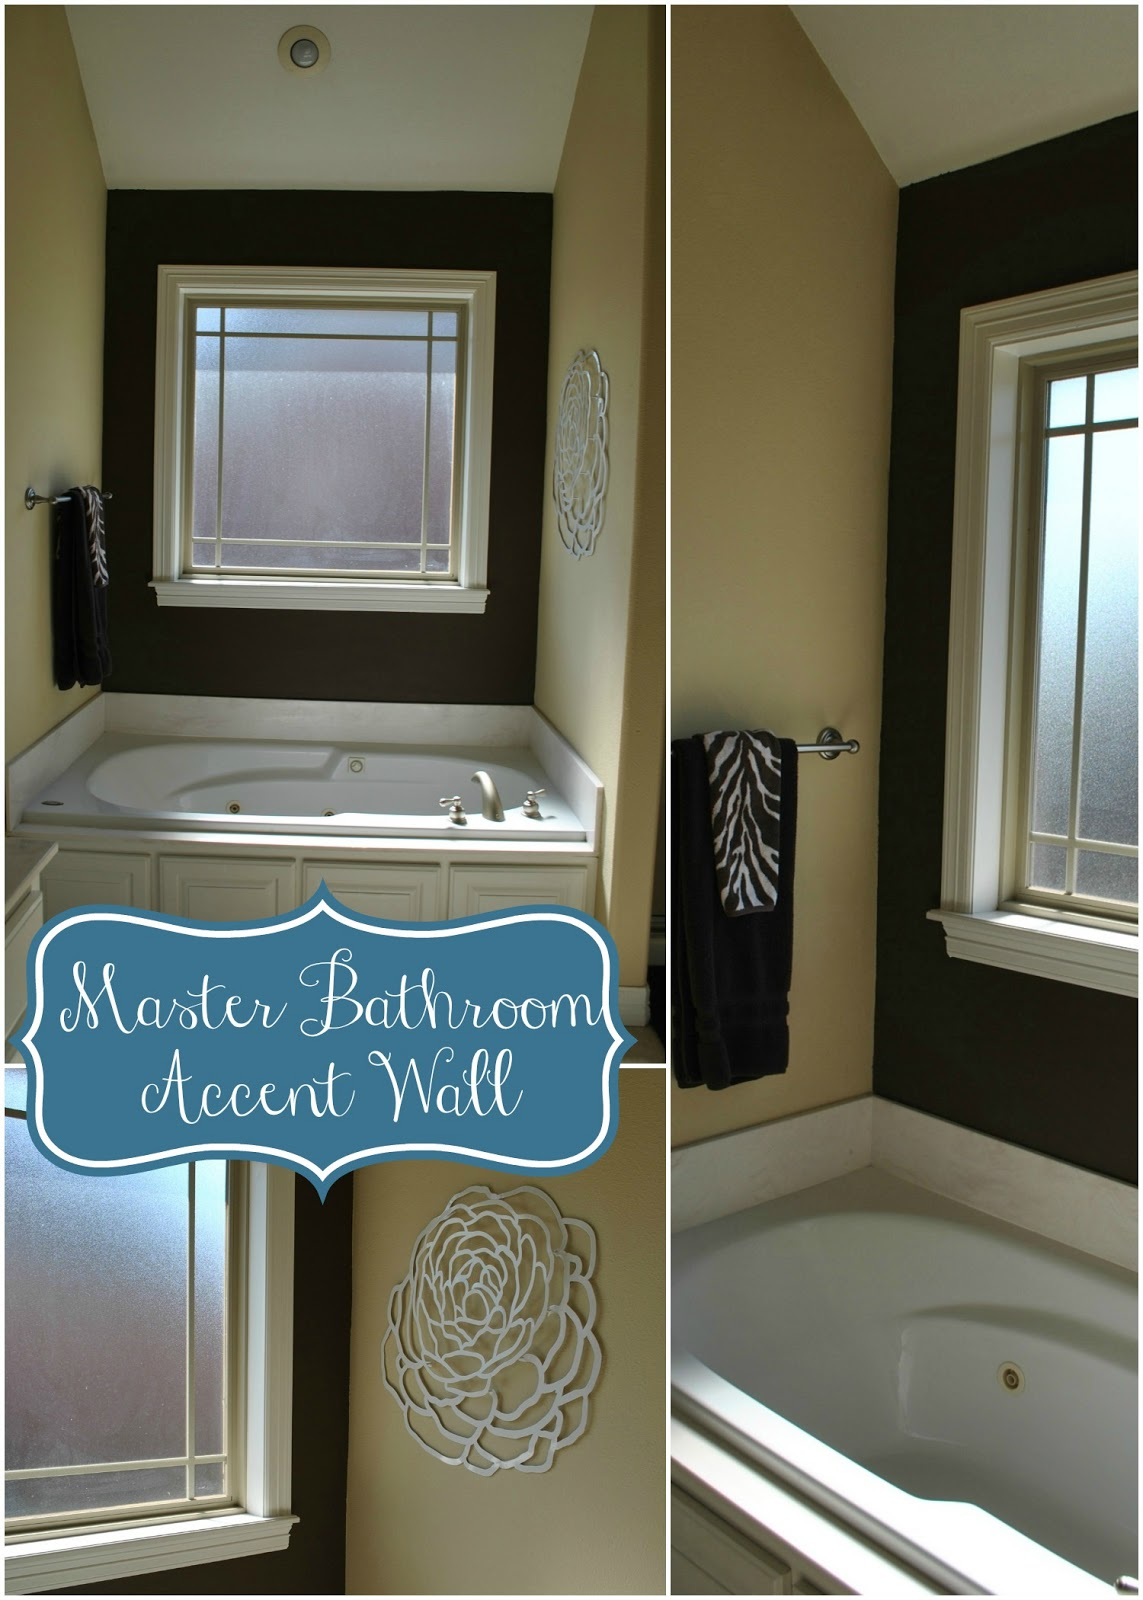 Best Wall Paint For Bathroom: The Francis Family: Master Bathroom Accent Wall